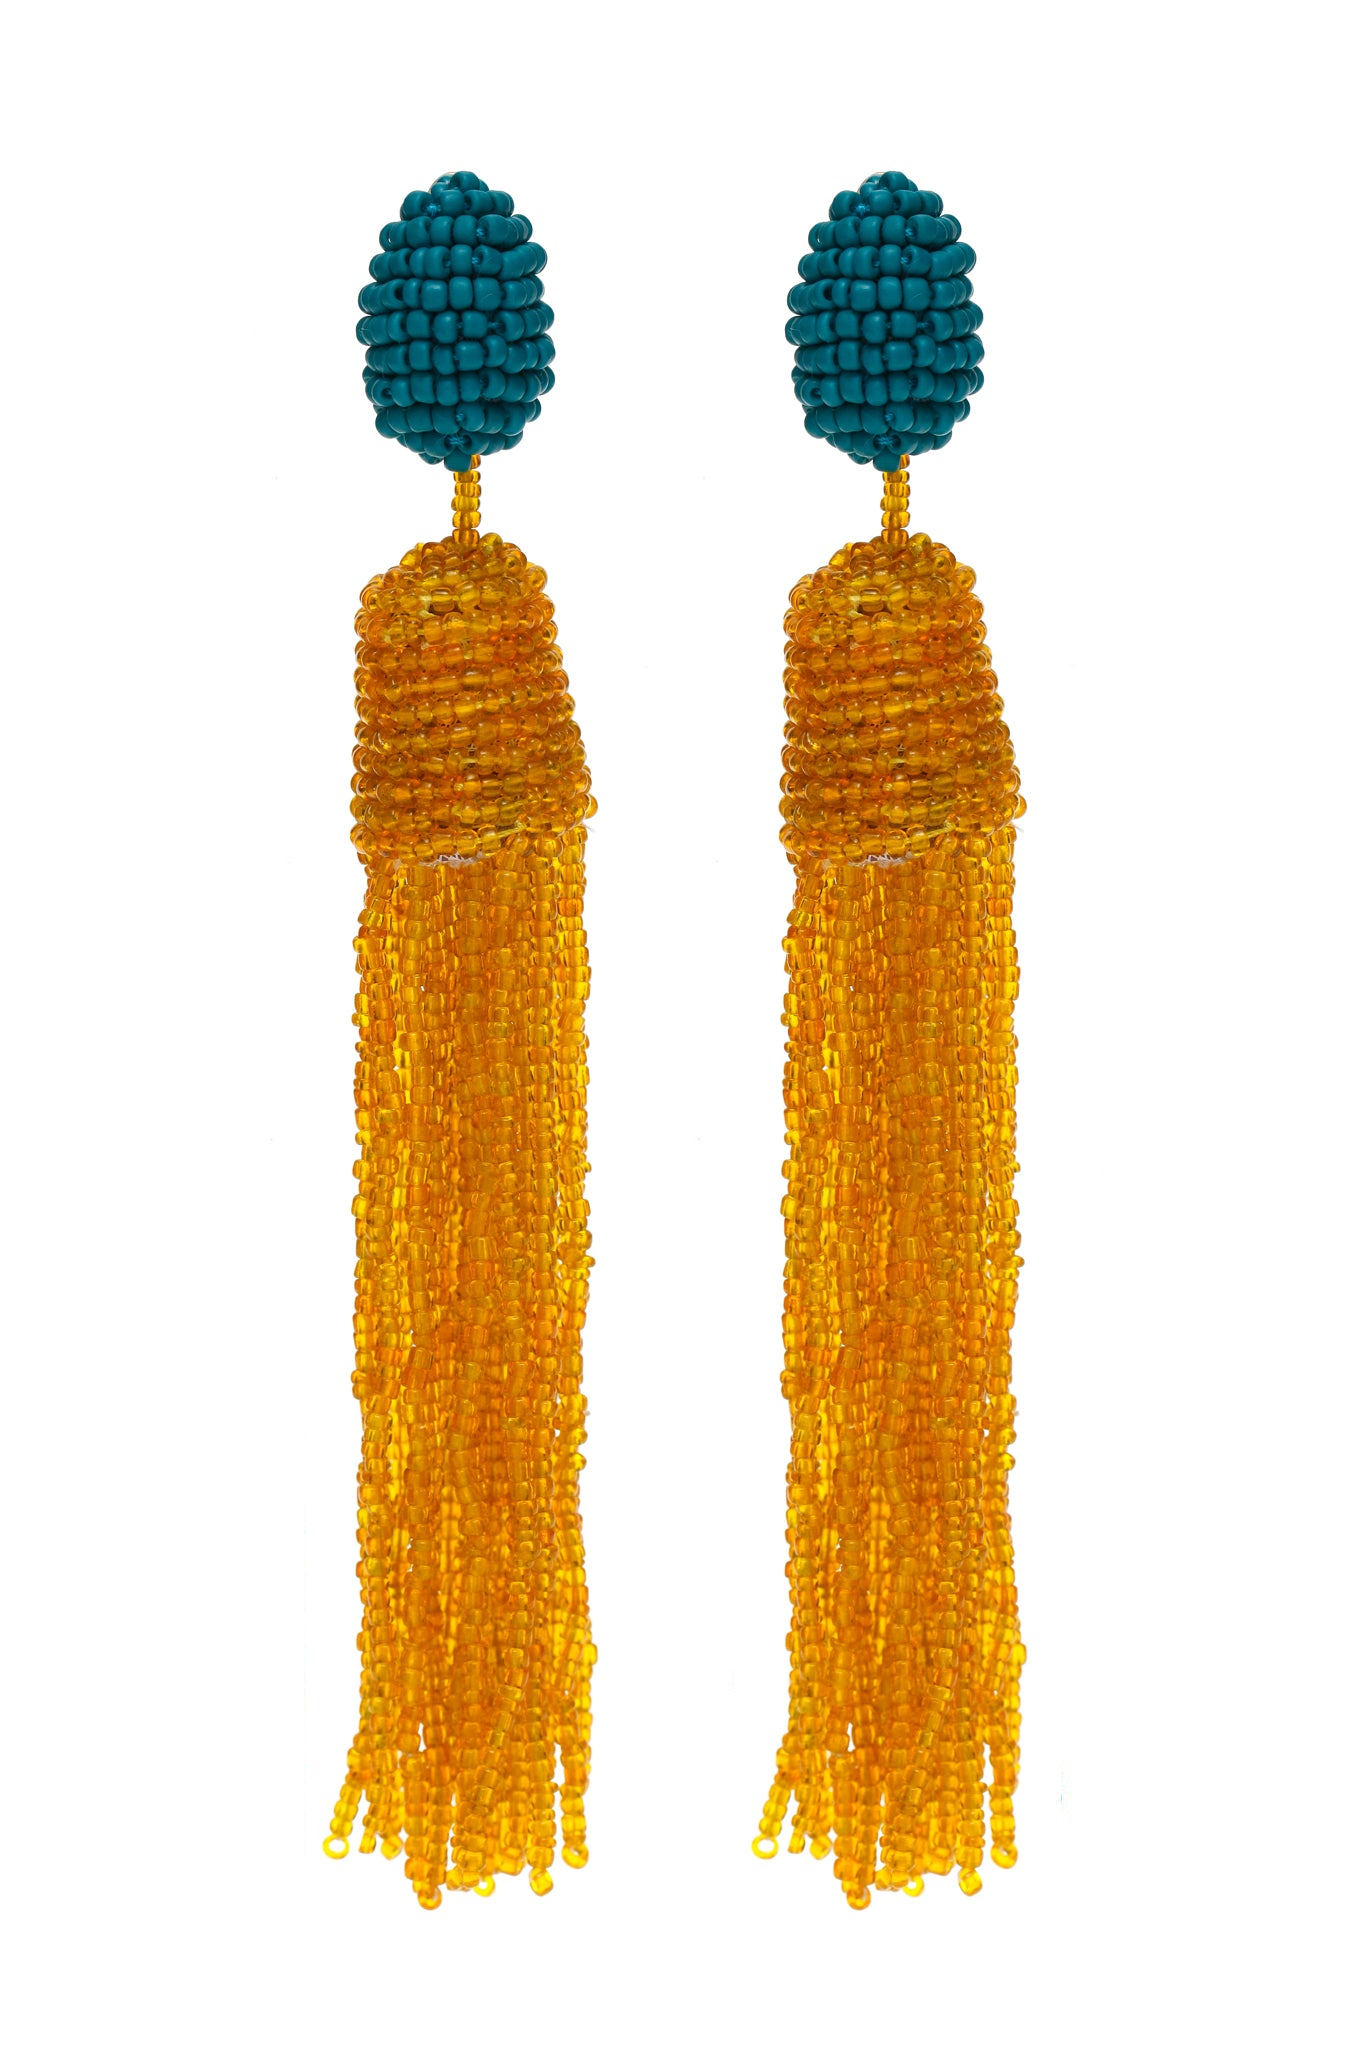 Blue and Yellow Beads Earrings